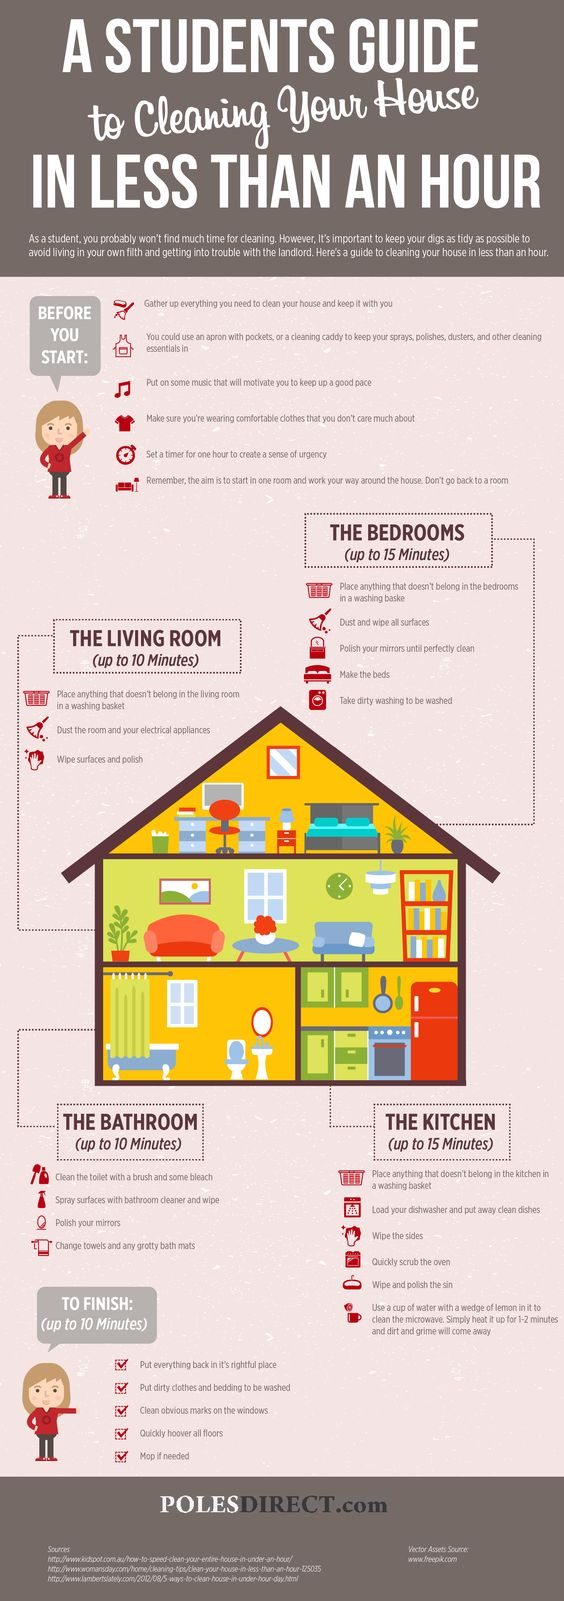 Cleaning a student and infographic on pinterest - House cleaninghour guide ...